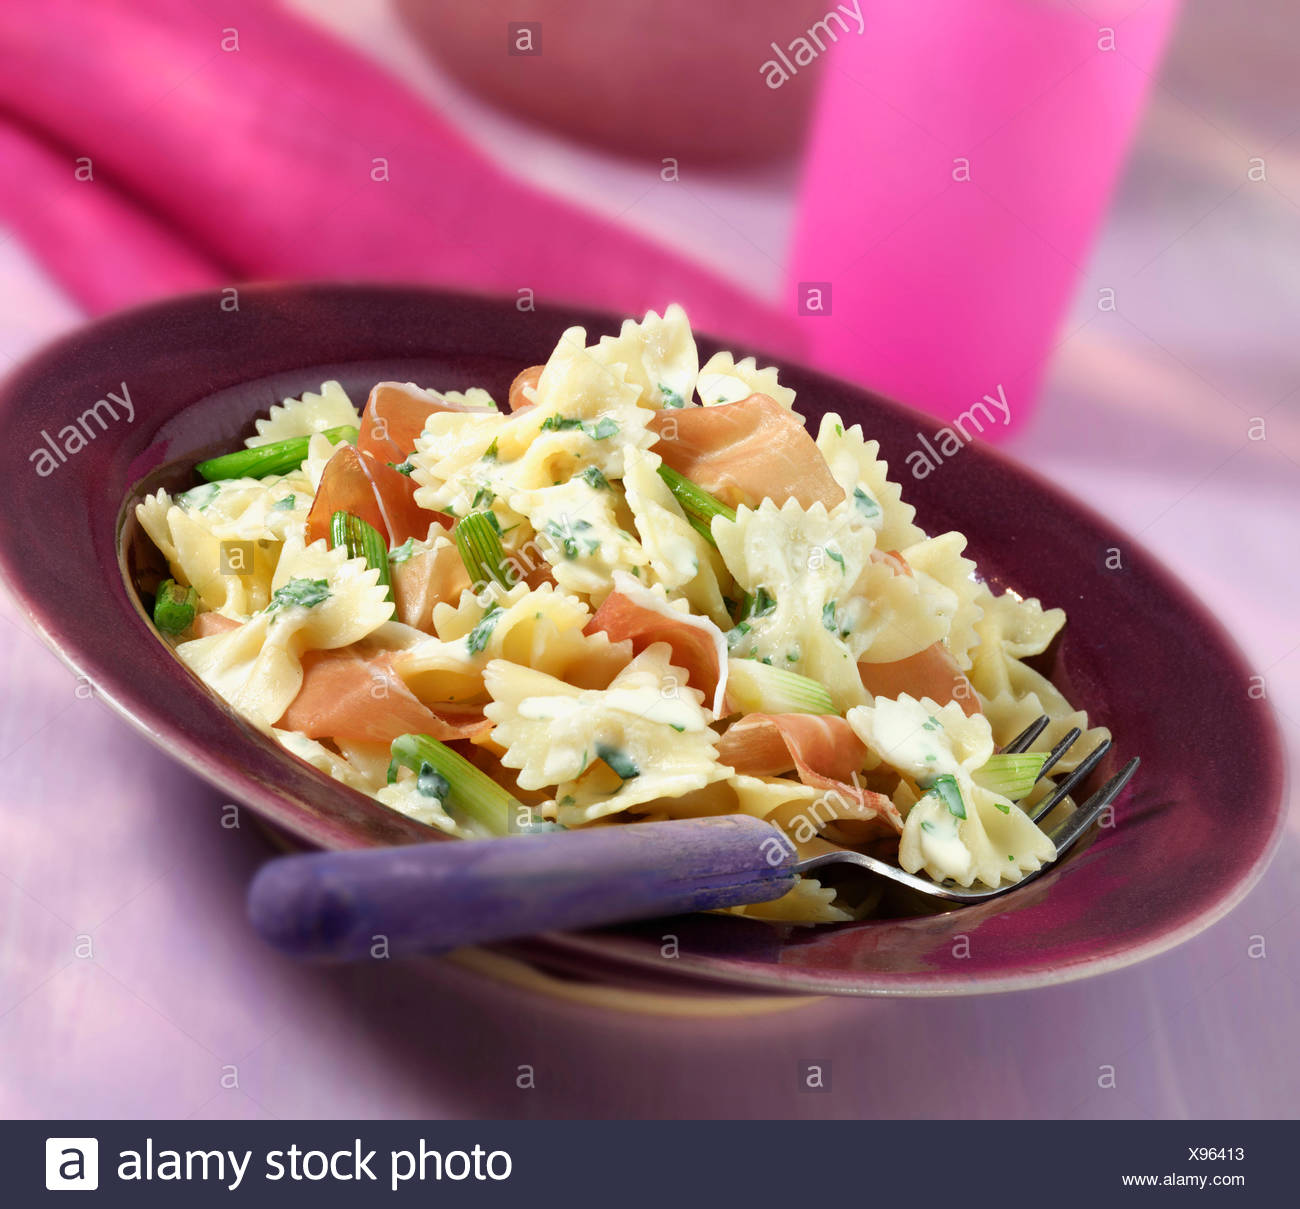 Plate Of Homemade Farfalle With Ham And Onion Stock Photo